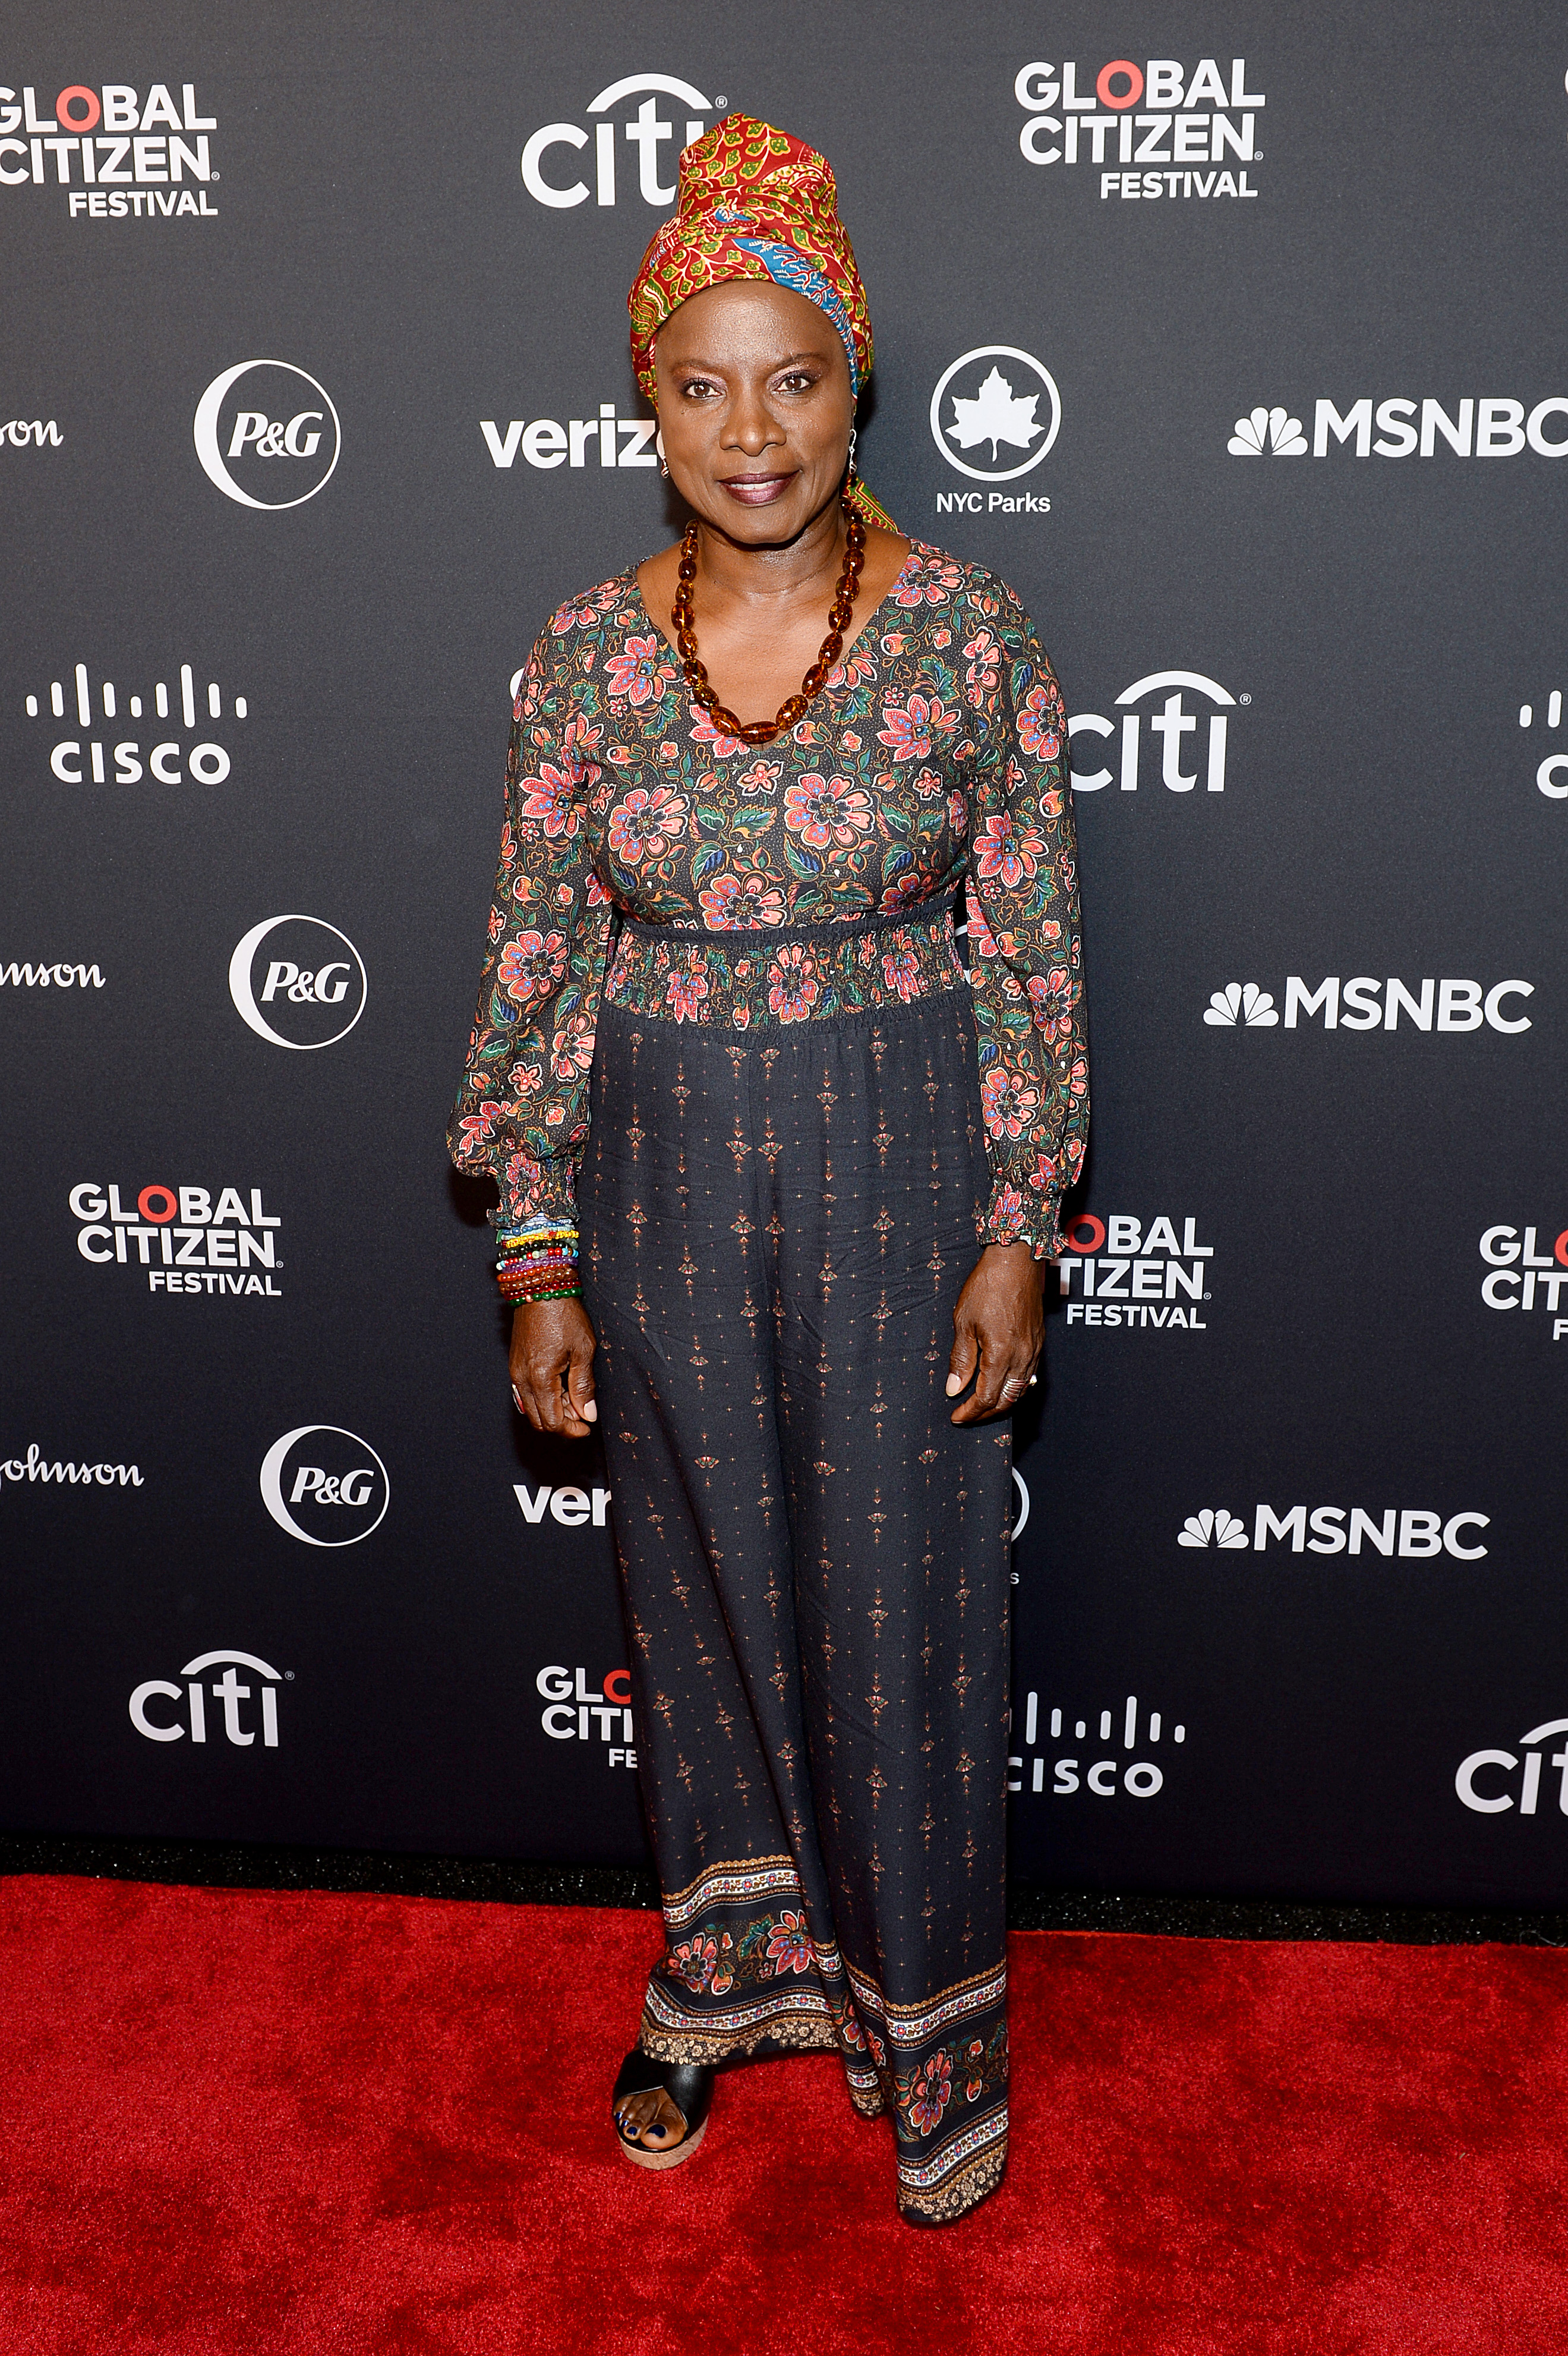 NEW YORK, NEW YORK - SEPTEMBER 28: Angelique Kidjo attends the 2019 Global Citizen Festival: Power The Movement in Central Park on September 28, 2019 in New York City. (Photo by Noam Galai/Getty Images for Global Citizen)